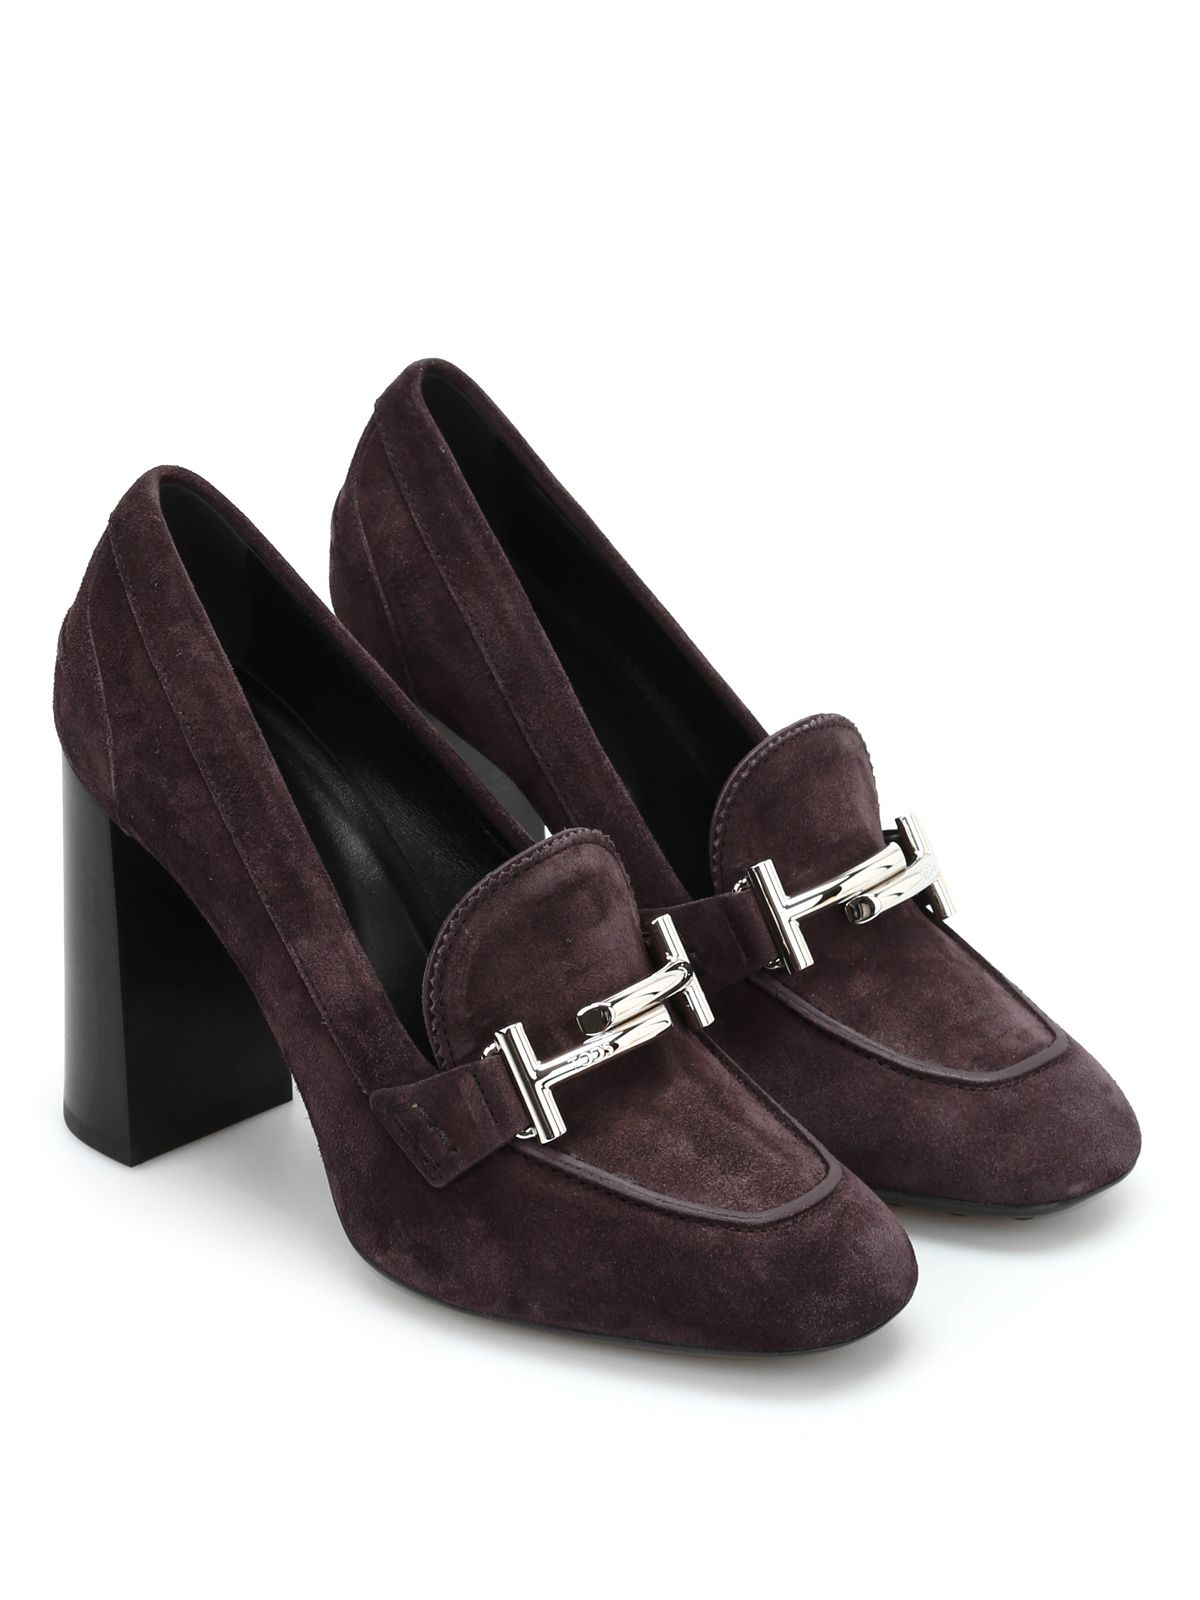 Tods Double T Suede Pumps